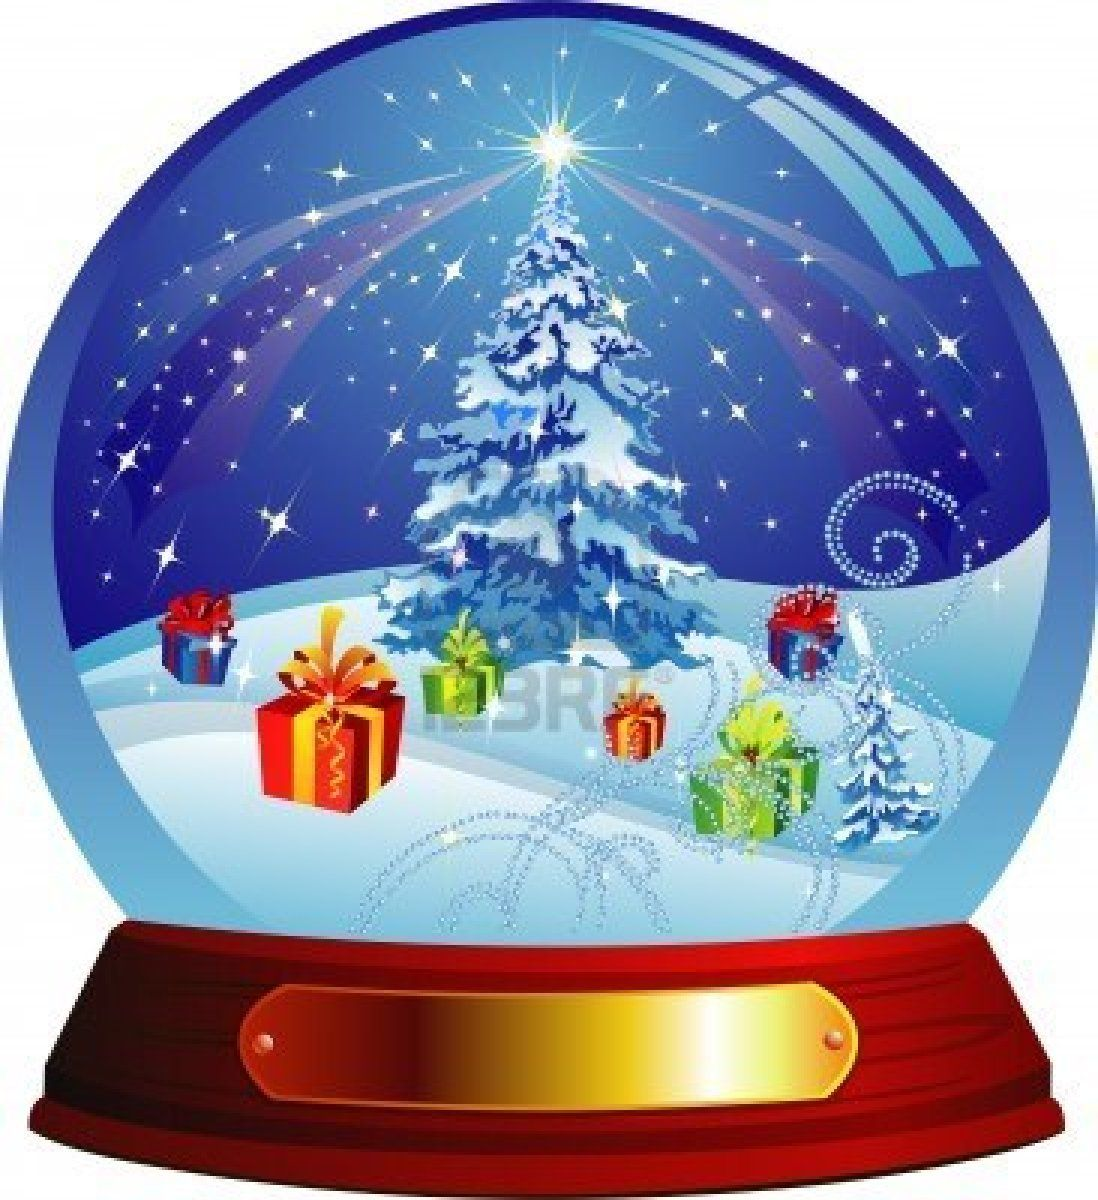 Vector Snow Globe With Christmas Tree And Presents Within Snow Globes Christmas Art Christmas Snow Globes